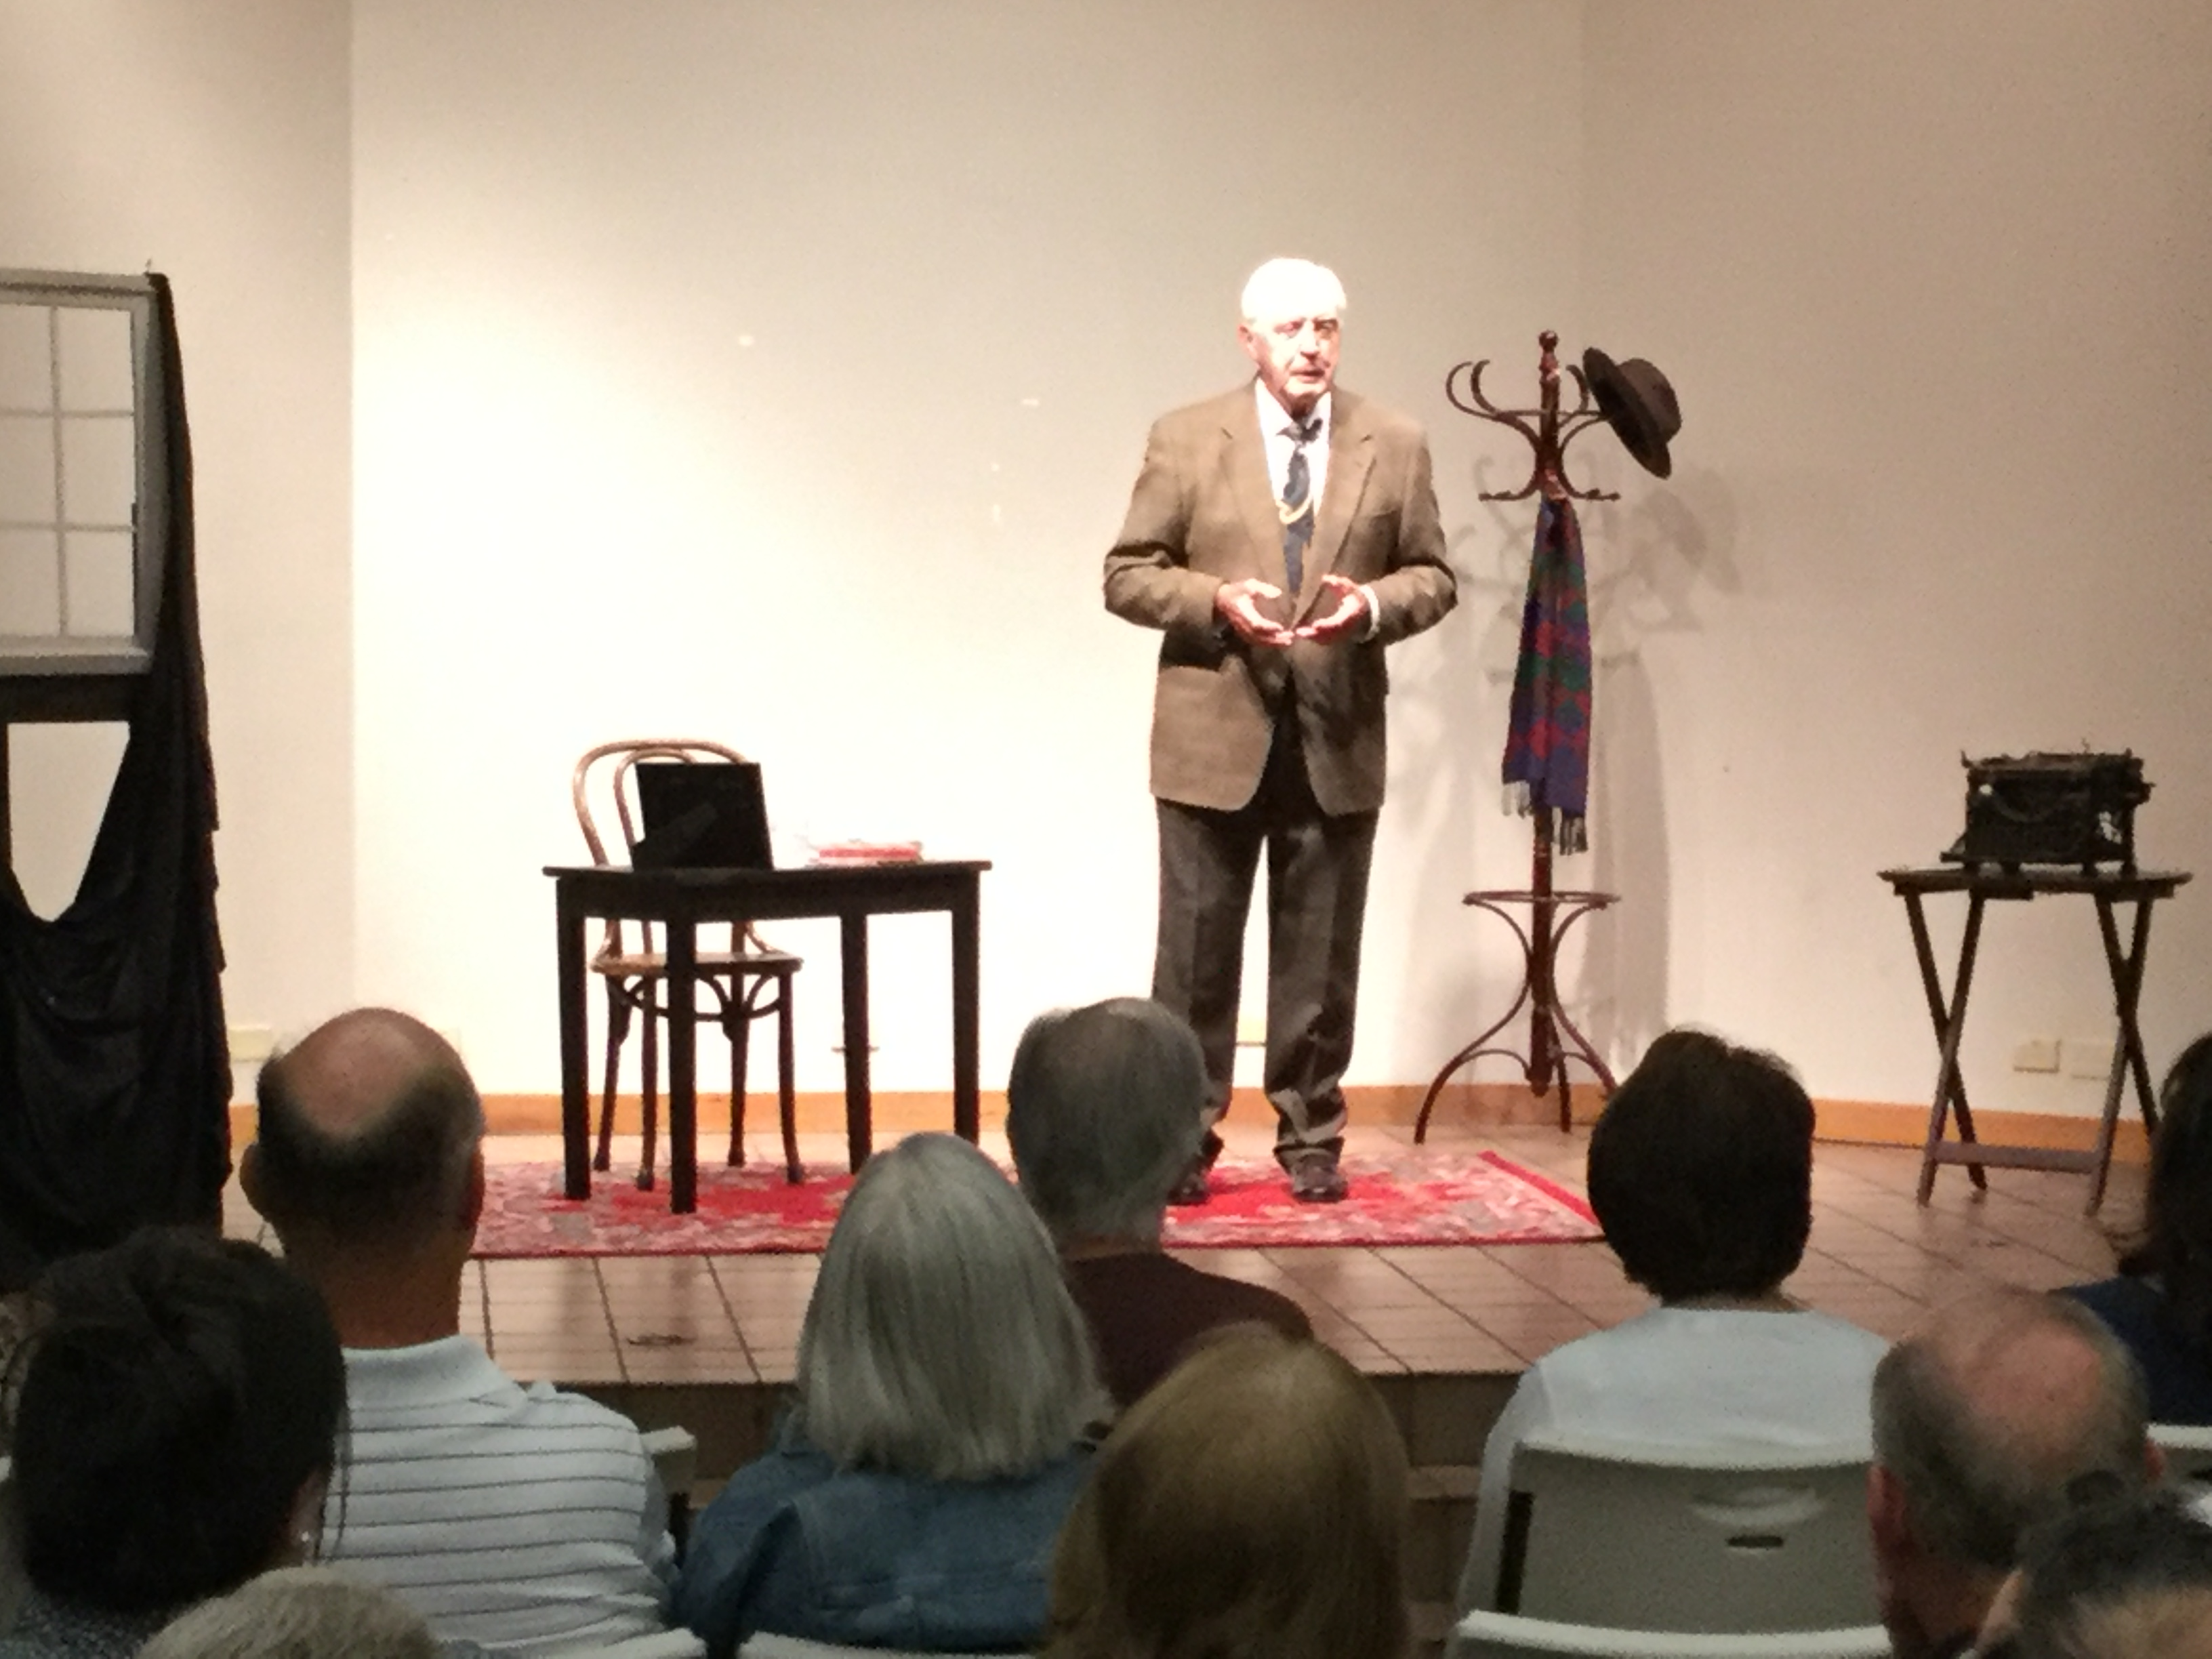 'After: A Play of Memories of Otto Frank' showing at Brentwood Library